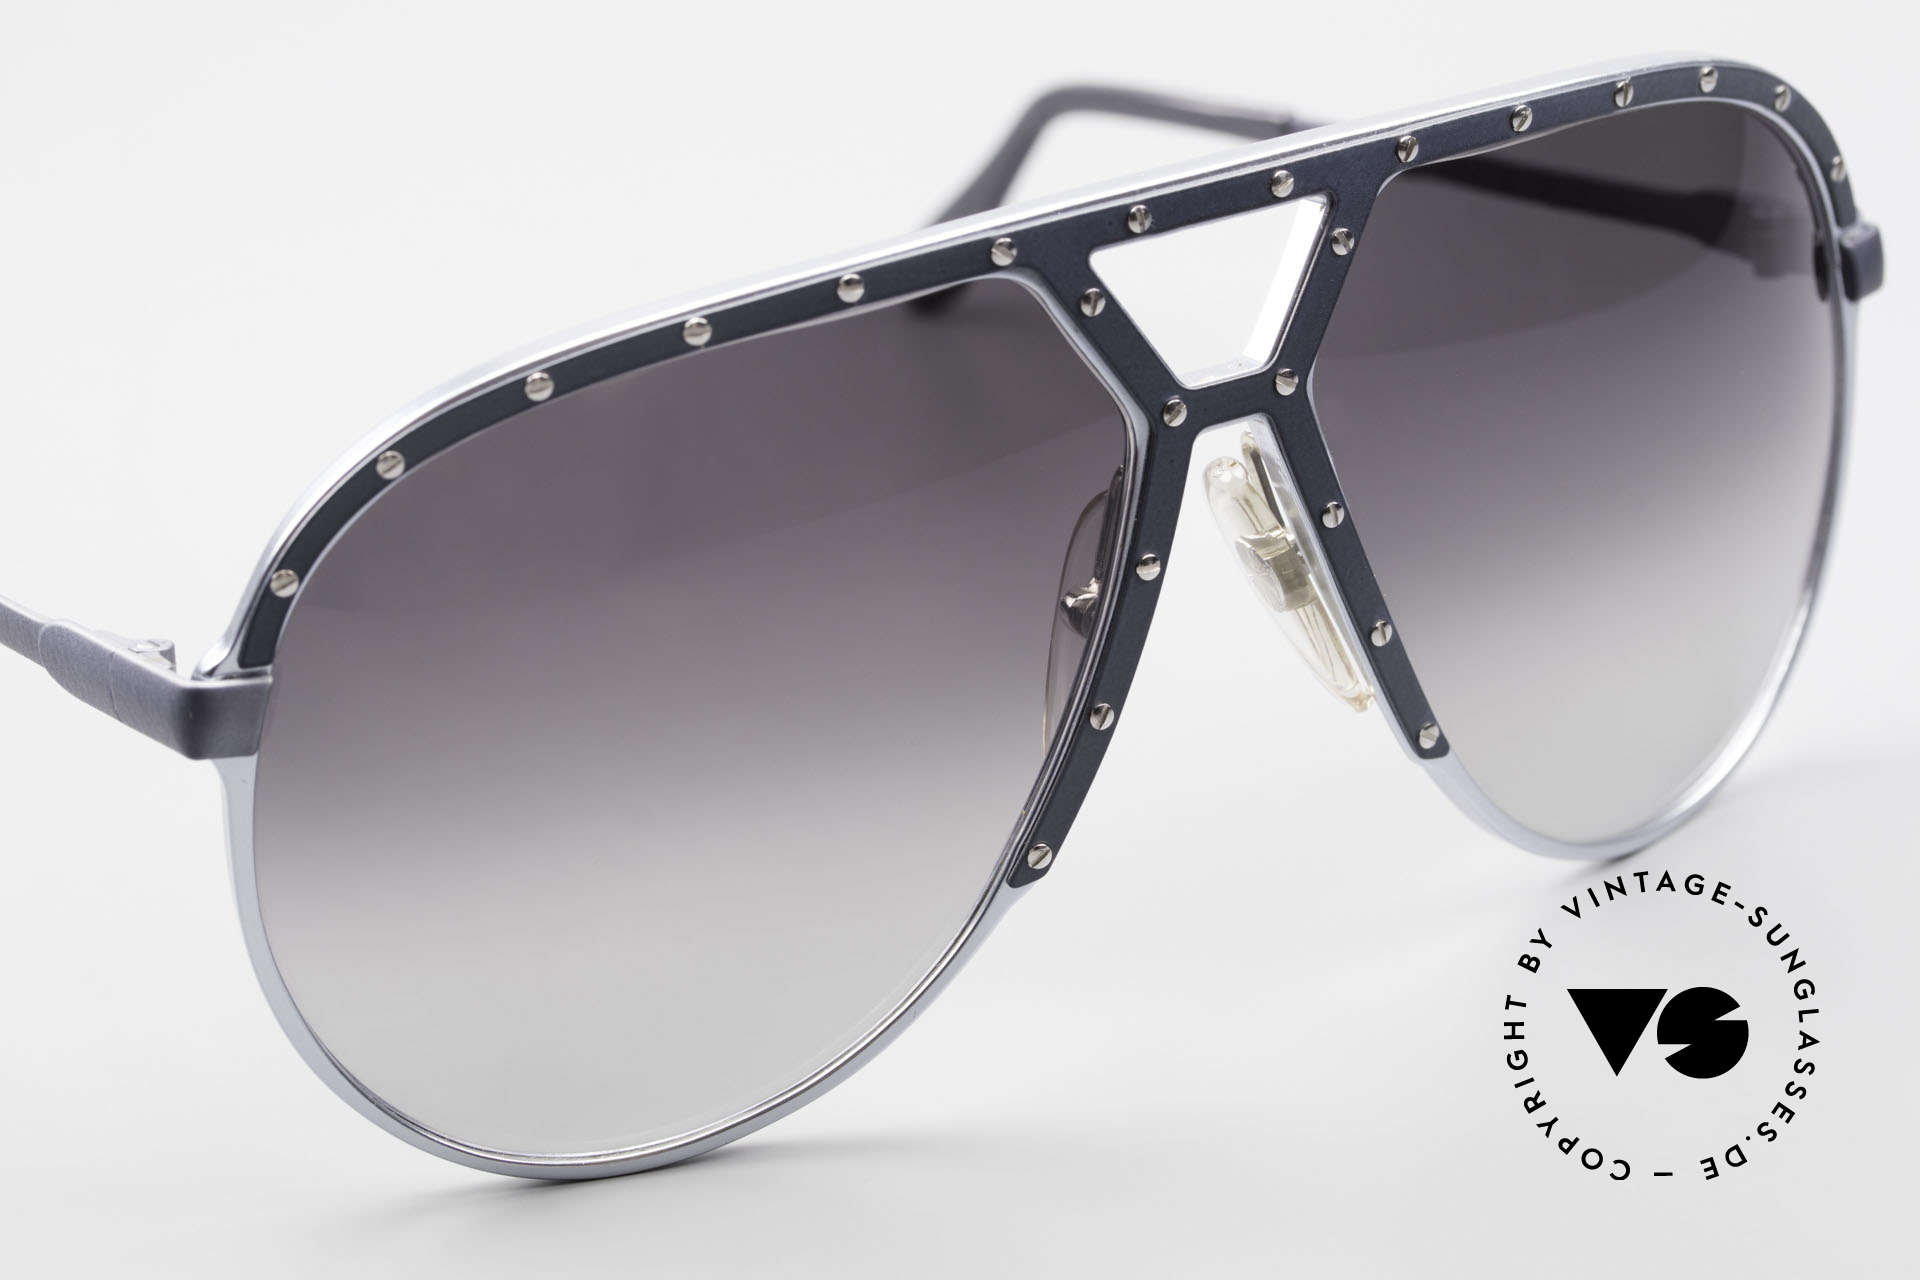 Alpina M1 Of The First M1 80's Generation, unworn with gray-gradient sun lenses & Bvlgari case, Made for Men